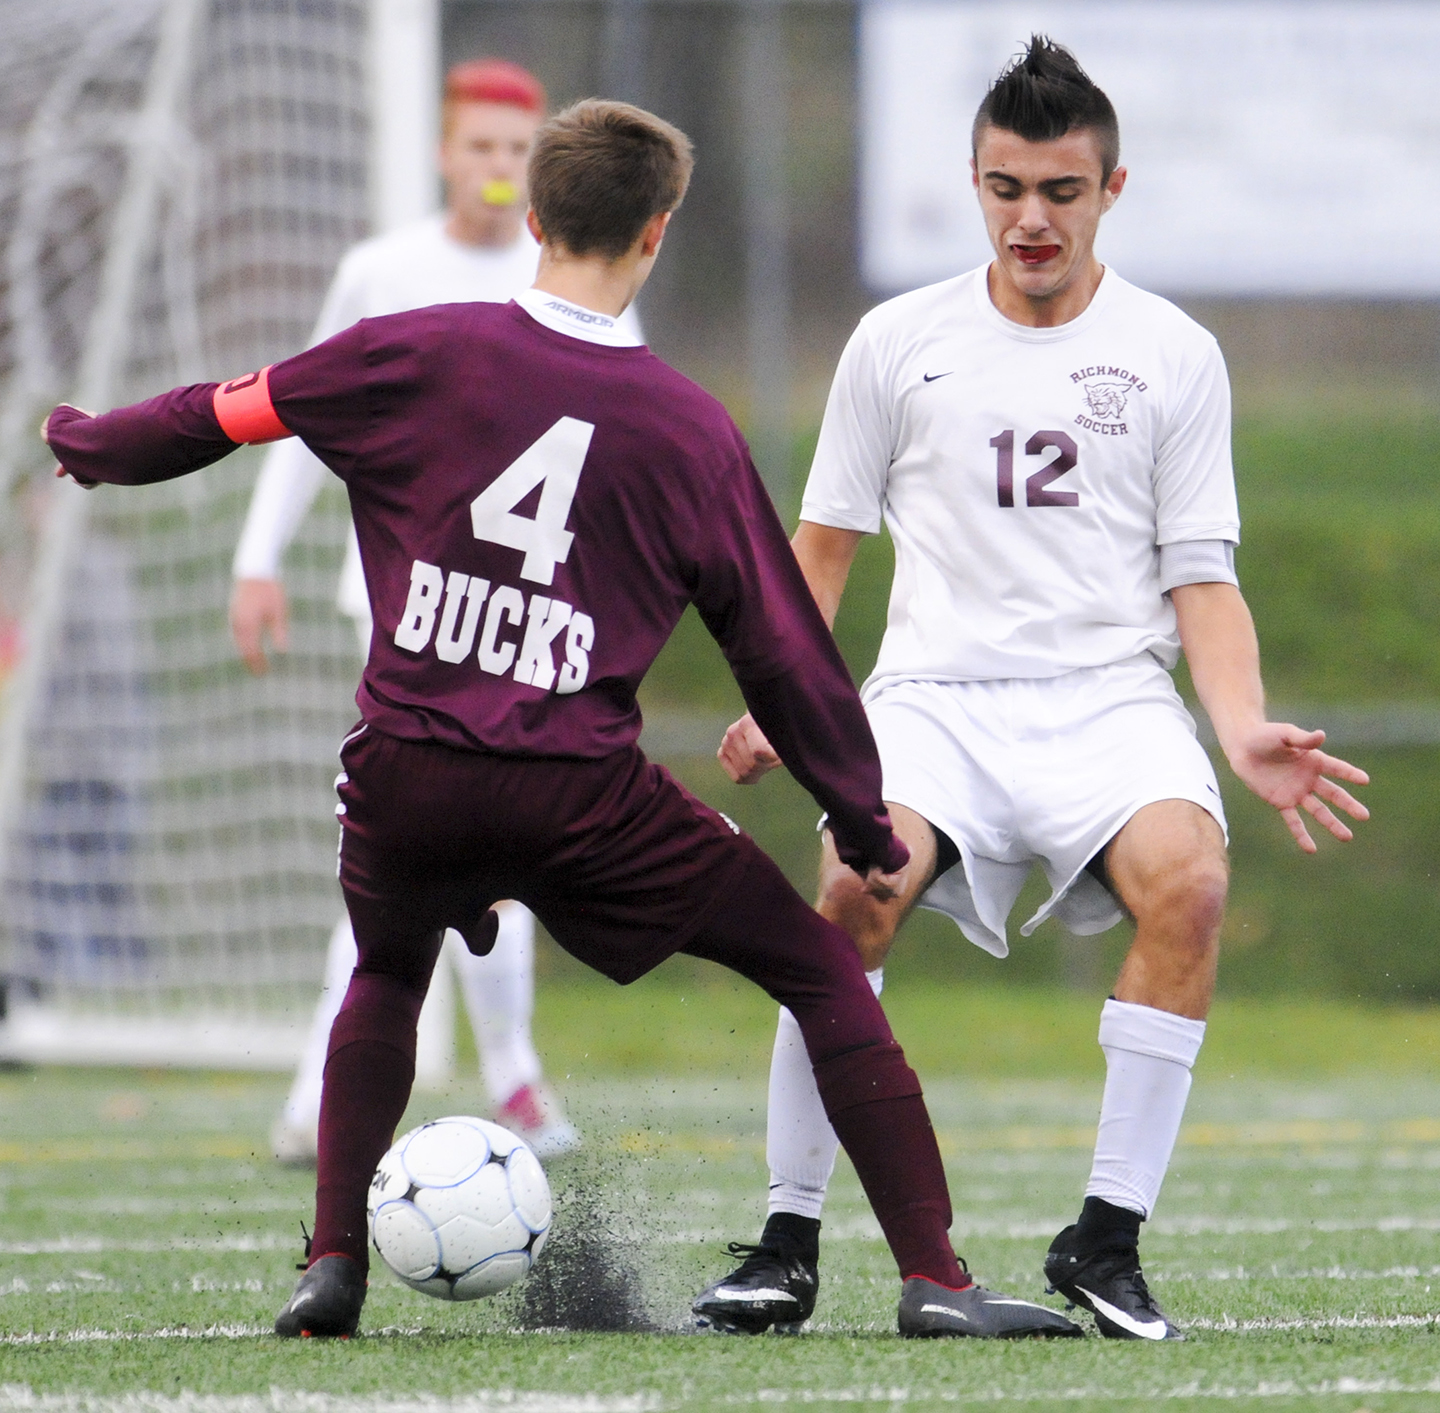 fe7334f05 Rubber chips from field turf pop up as Buckfield's Tobias Worthley, left,  and Richmond's Zach Small battle for a ball in the D South boys' soccer ...